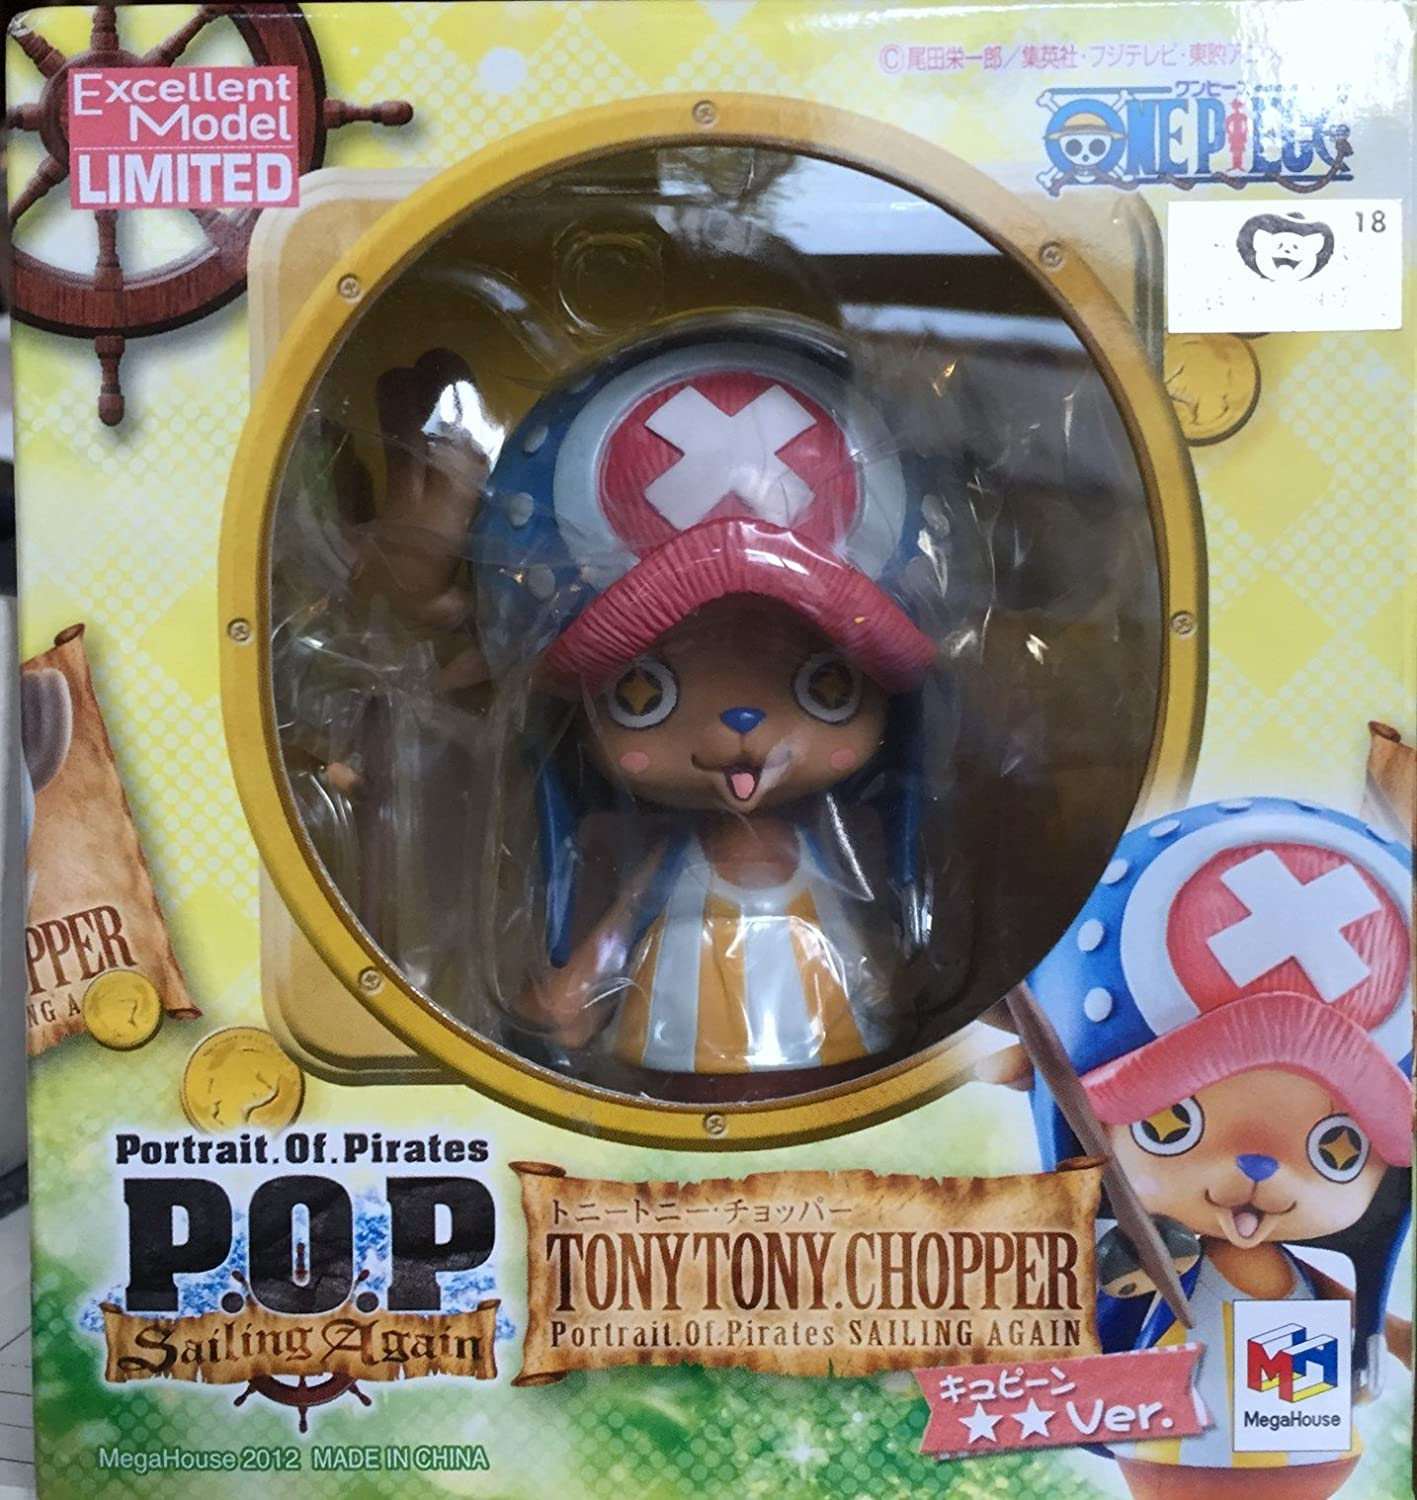 Barato Excellent Model LIMITED Portrait.Of.Pirates One